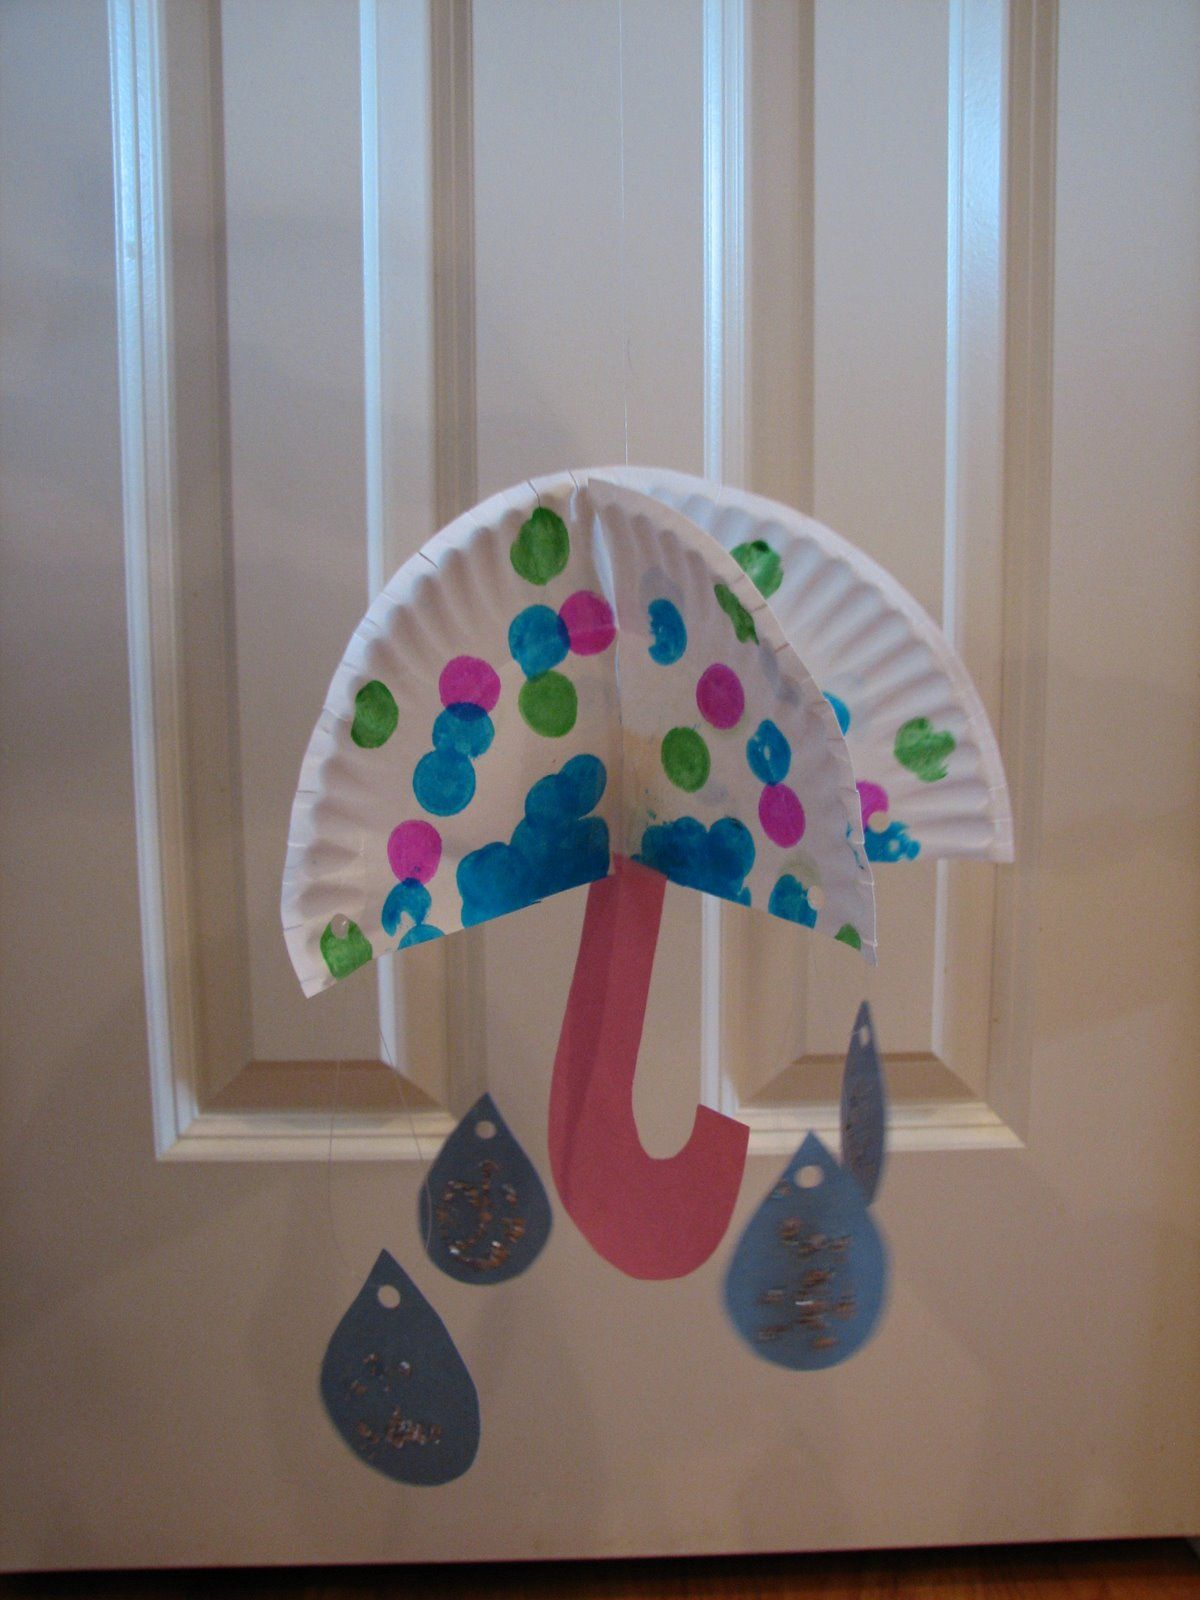 Ramblings Of A Crazy Woman April Showers Bring May Flowers Umbrella Craft